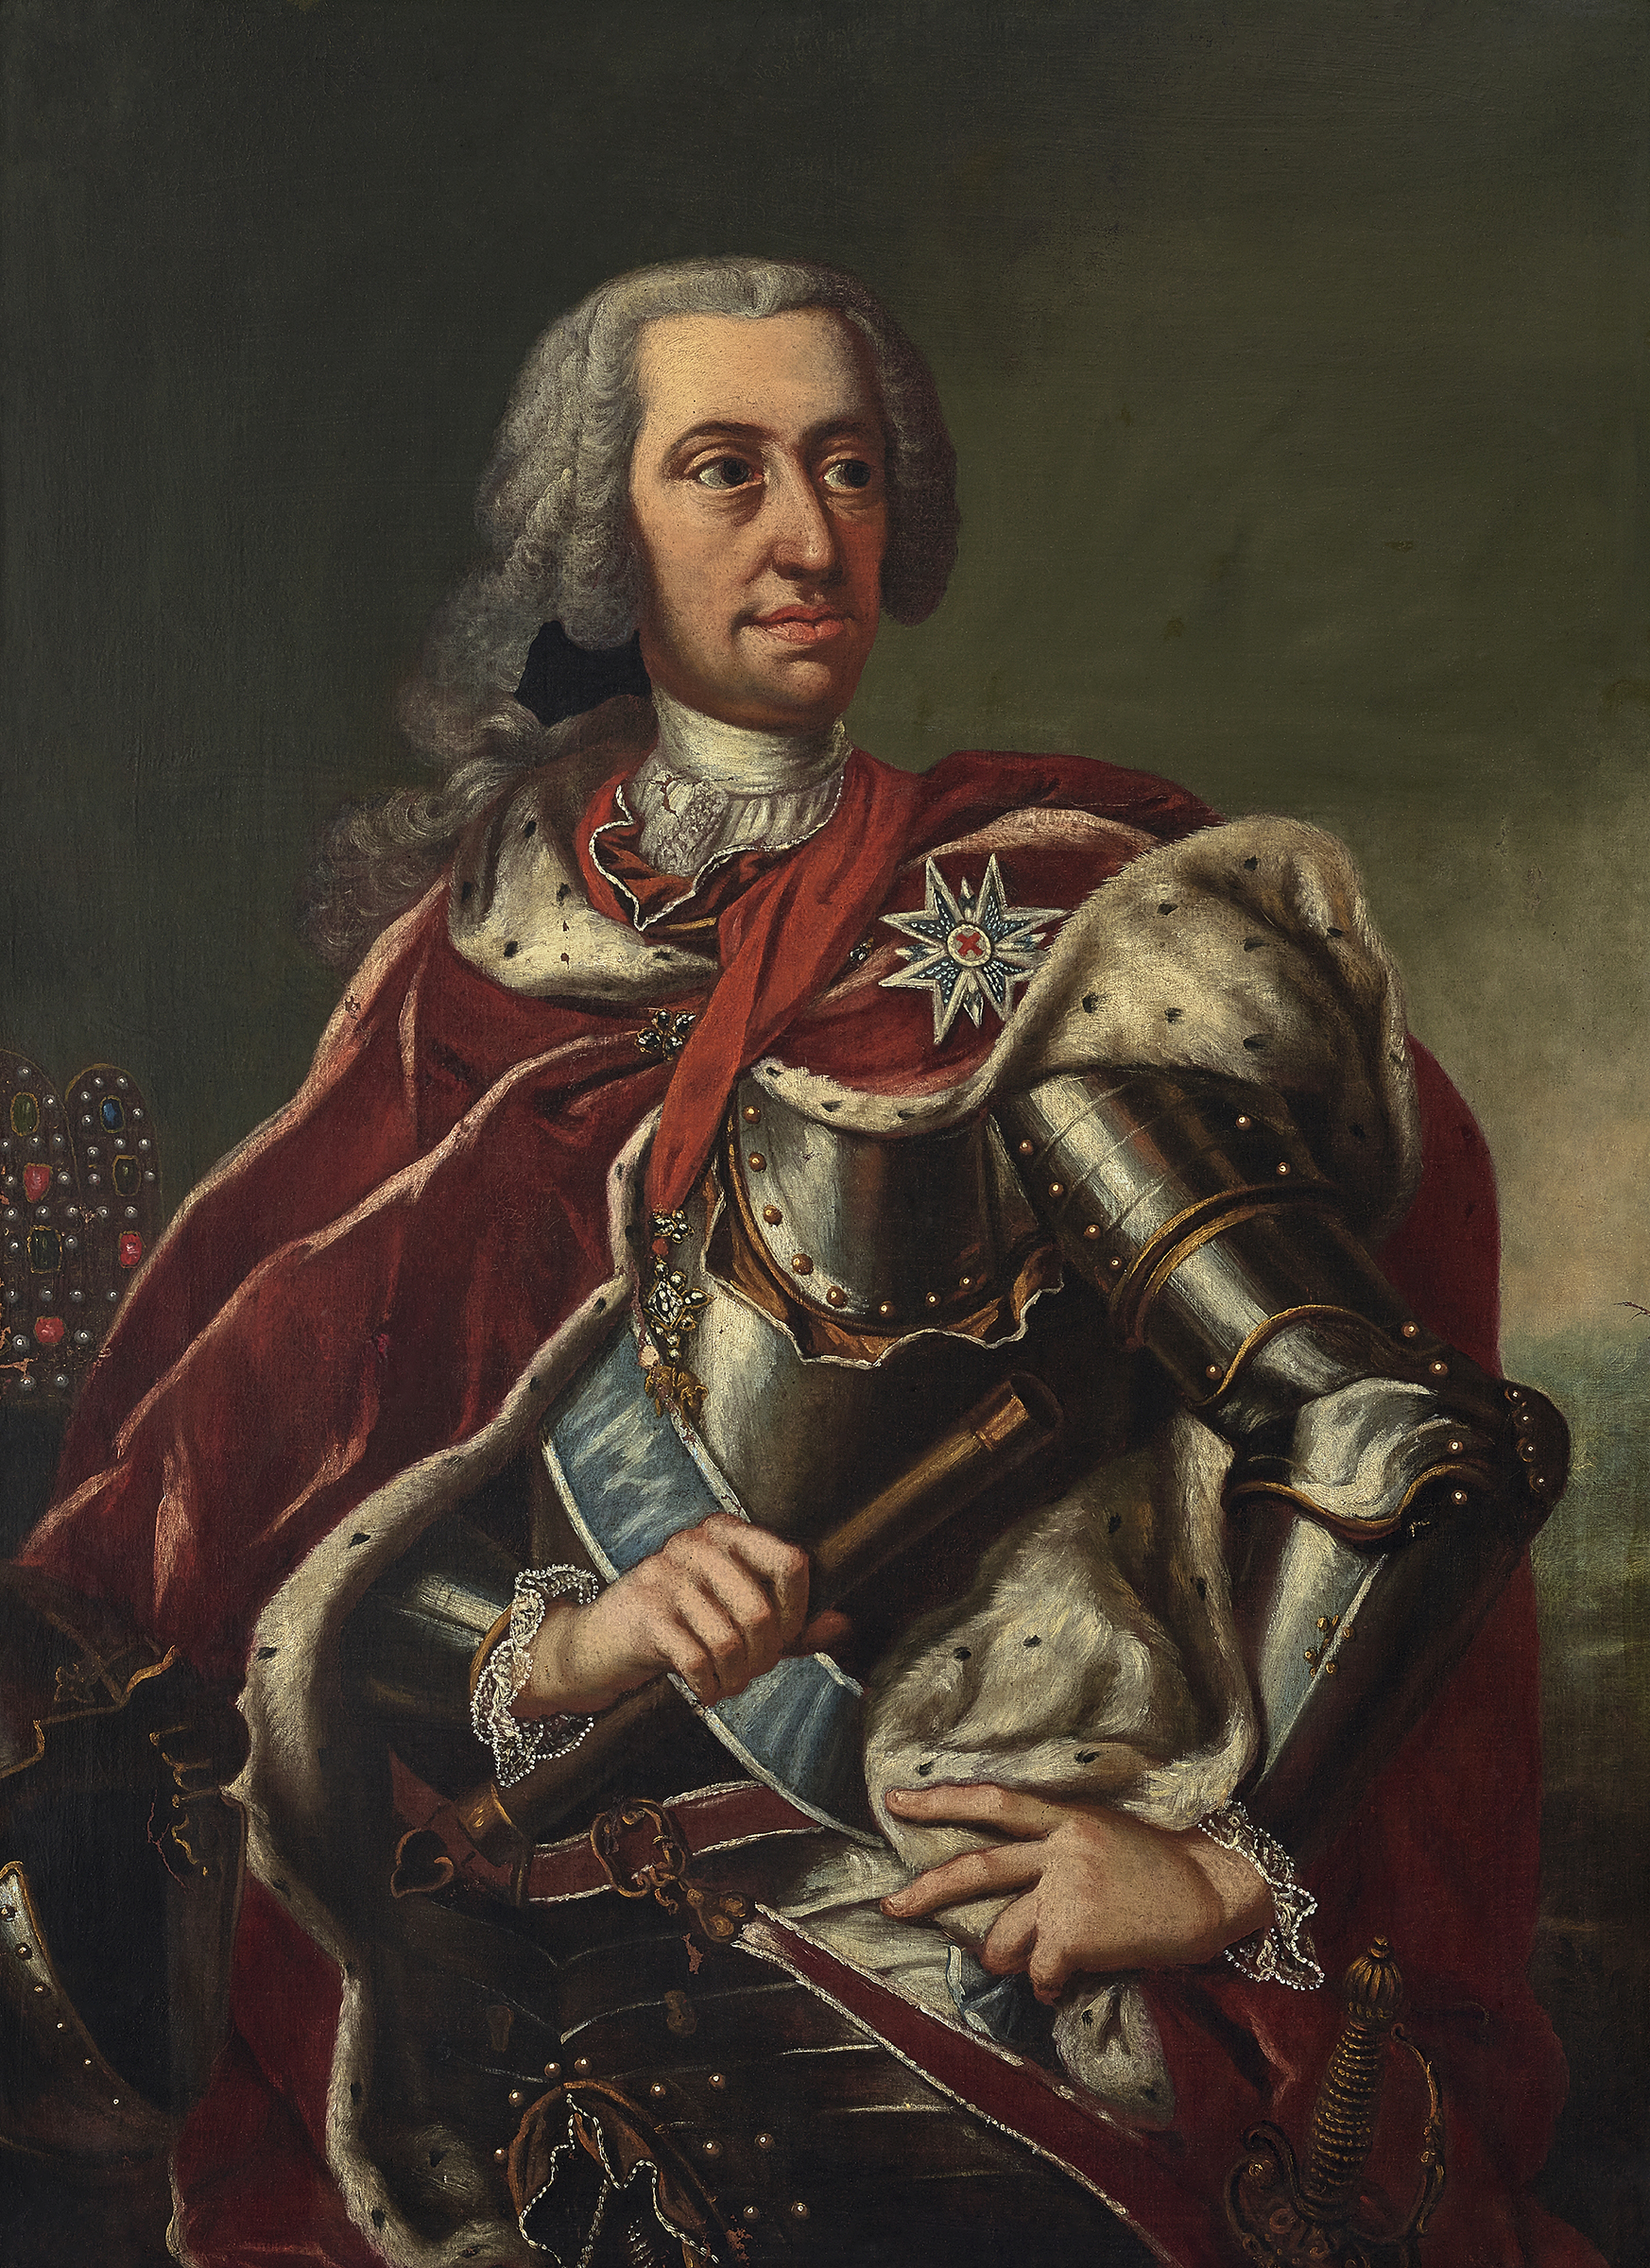 Portrait of Charles VII (1697-1745), Holy Roman Emperor, King in Germany (1742-1745), Elector of Bavaria (Charles Albert; German: Karl Albrecht von Bayern) from 1726 to1745; King of Bohemia (1741-1743) | Portraits of Kings